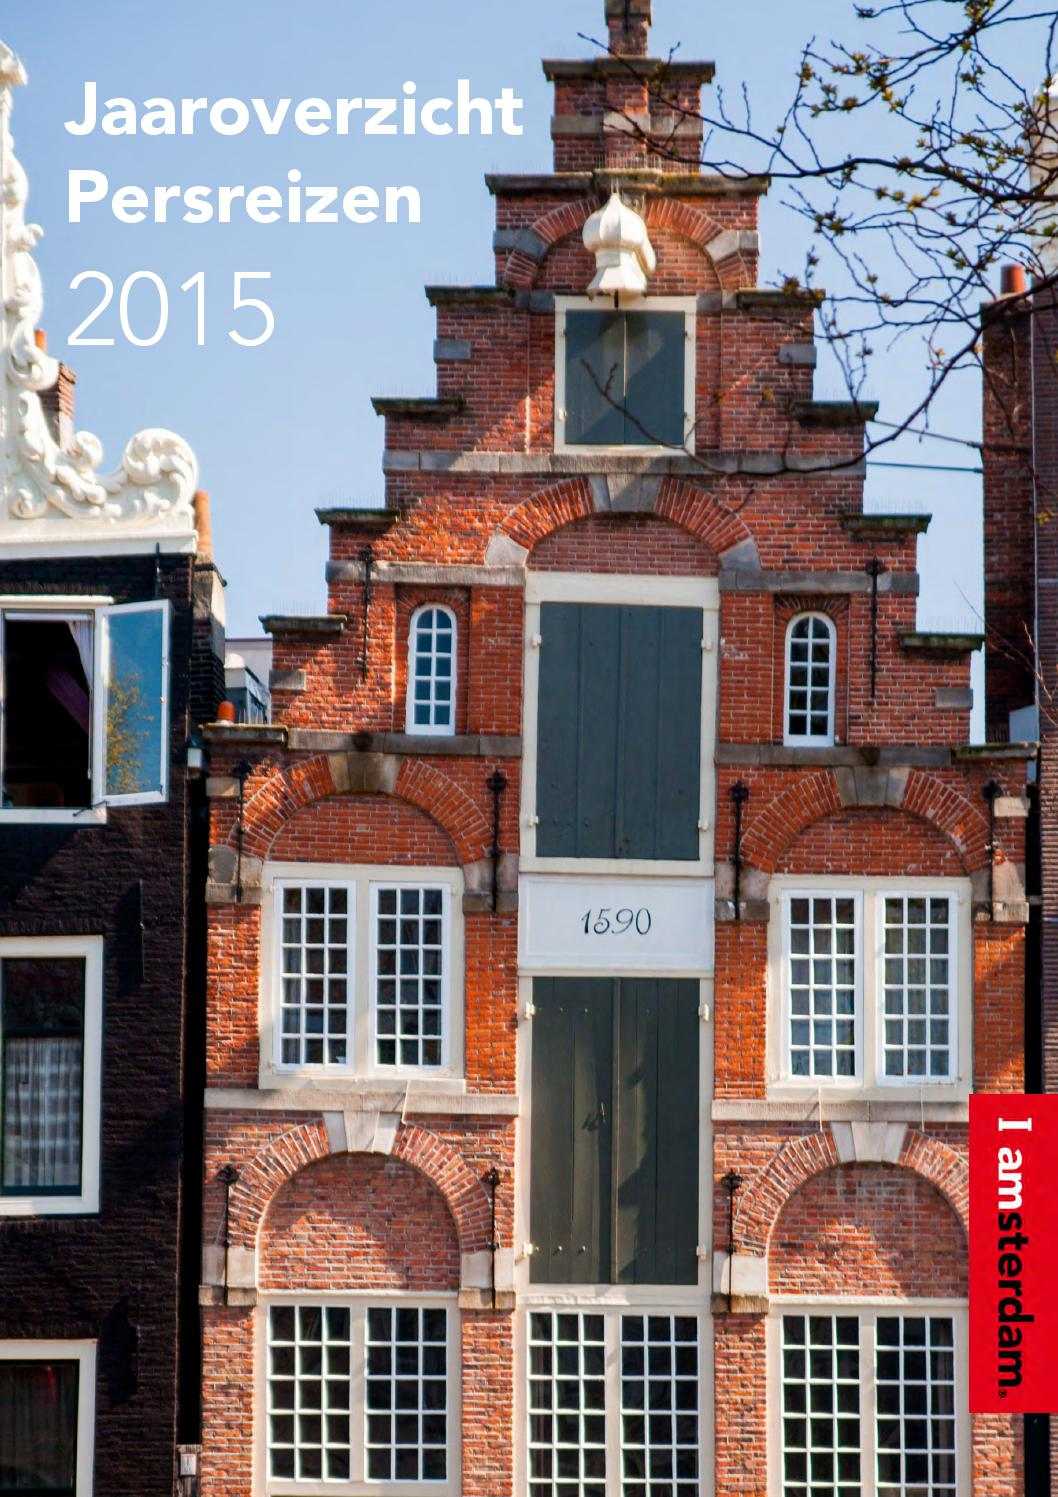 Jaaroverzicht Persreizen 2015 Amsterdam Marketing By Amsterdam